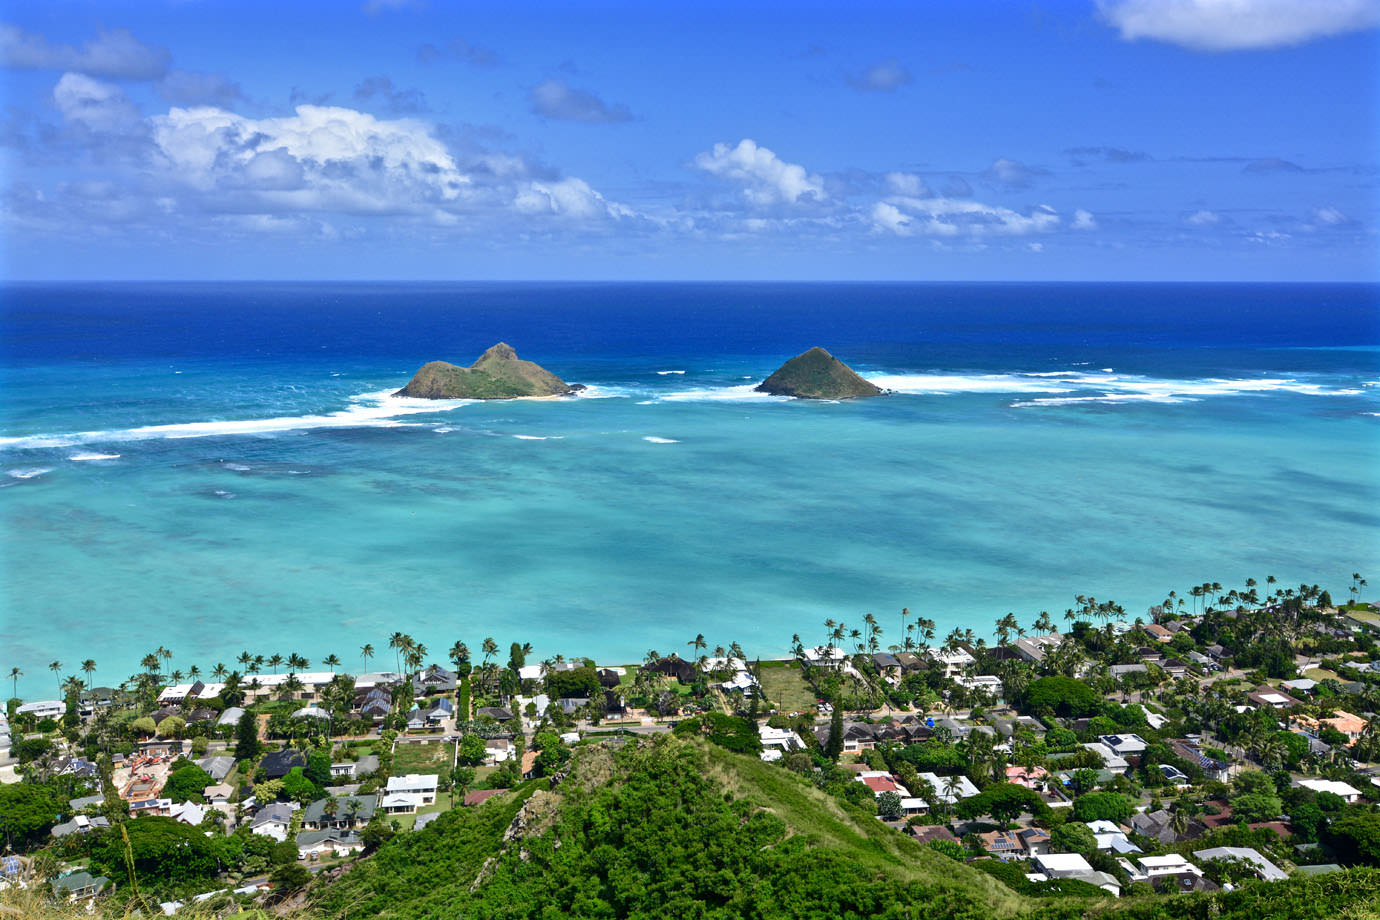 View from Lanikai Pillboxes